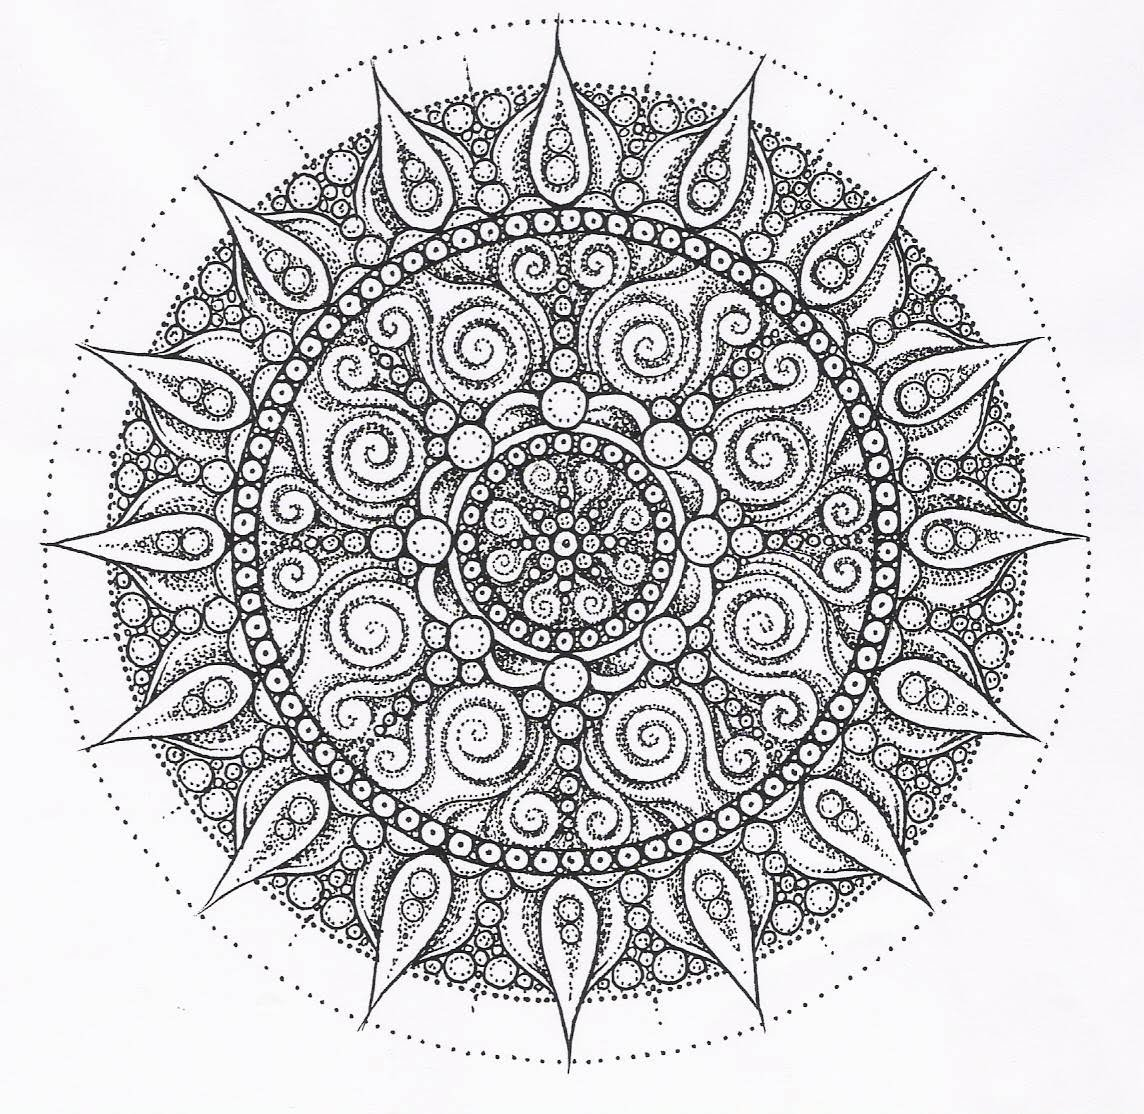 Mandala Coloring Pages Others ColoringPedia - printable mandala coloring pages for adults